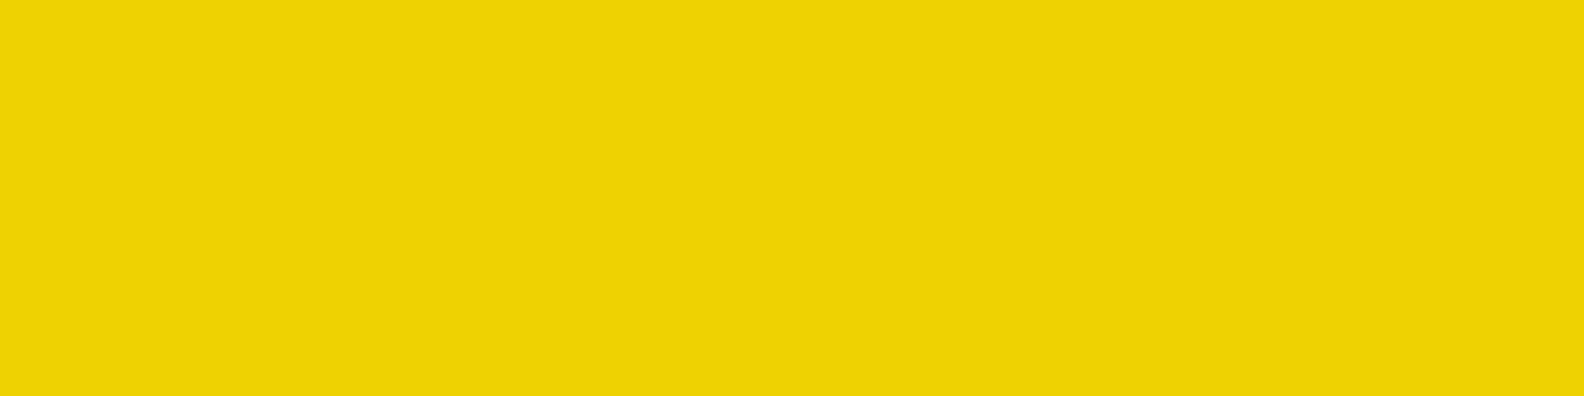 1584x396 Safety Yellow Solid Color Background